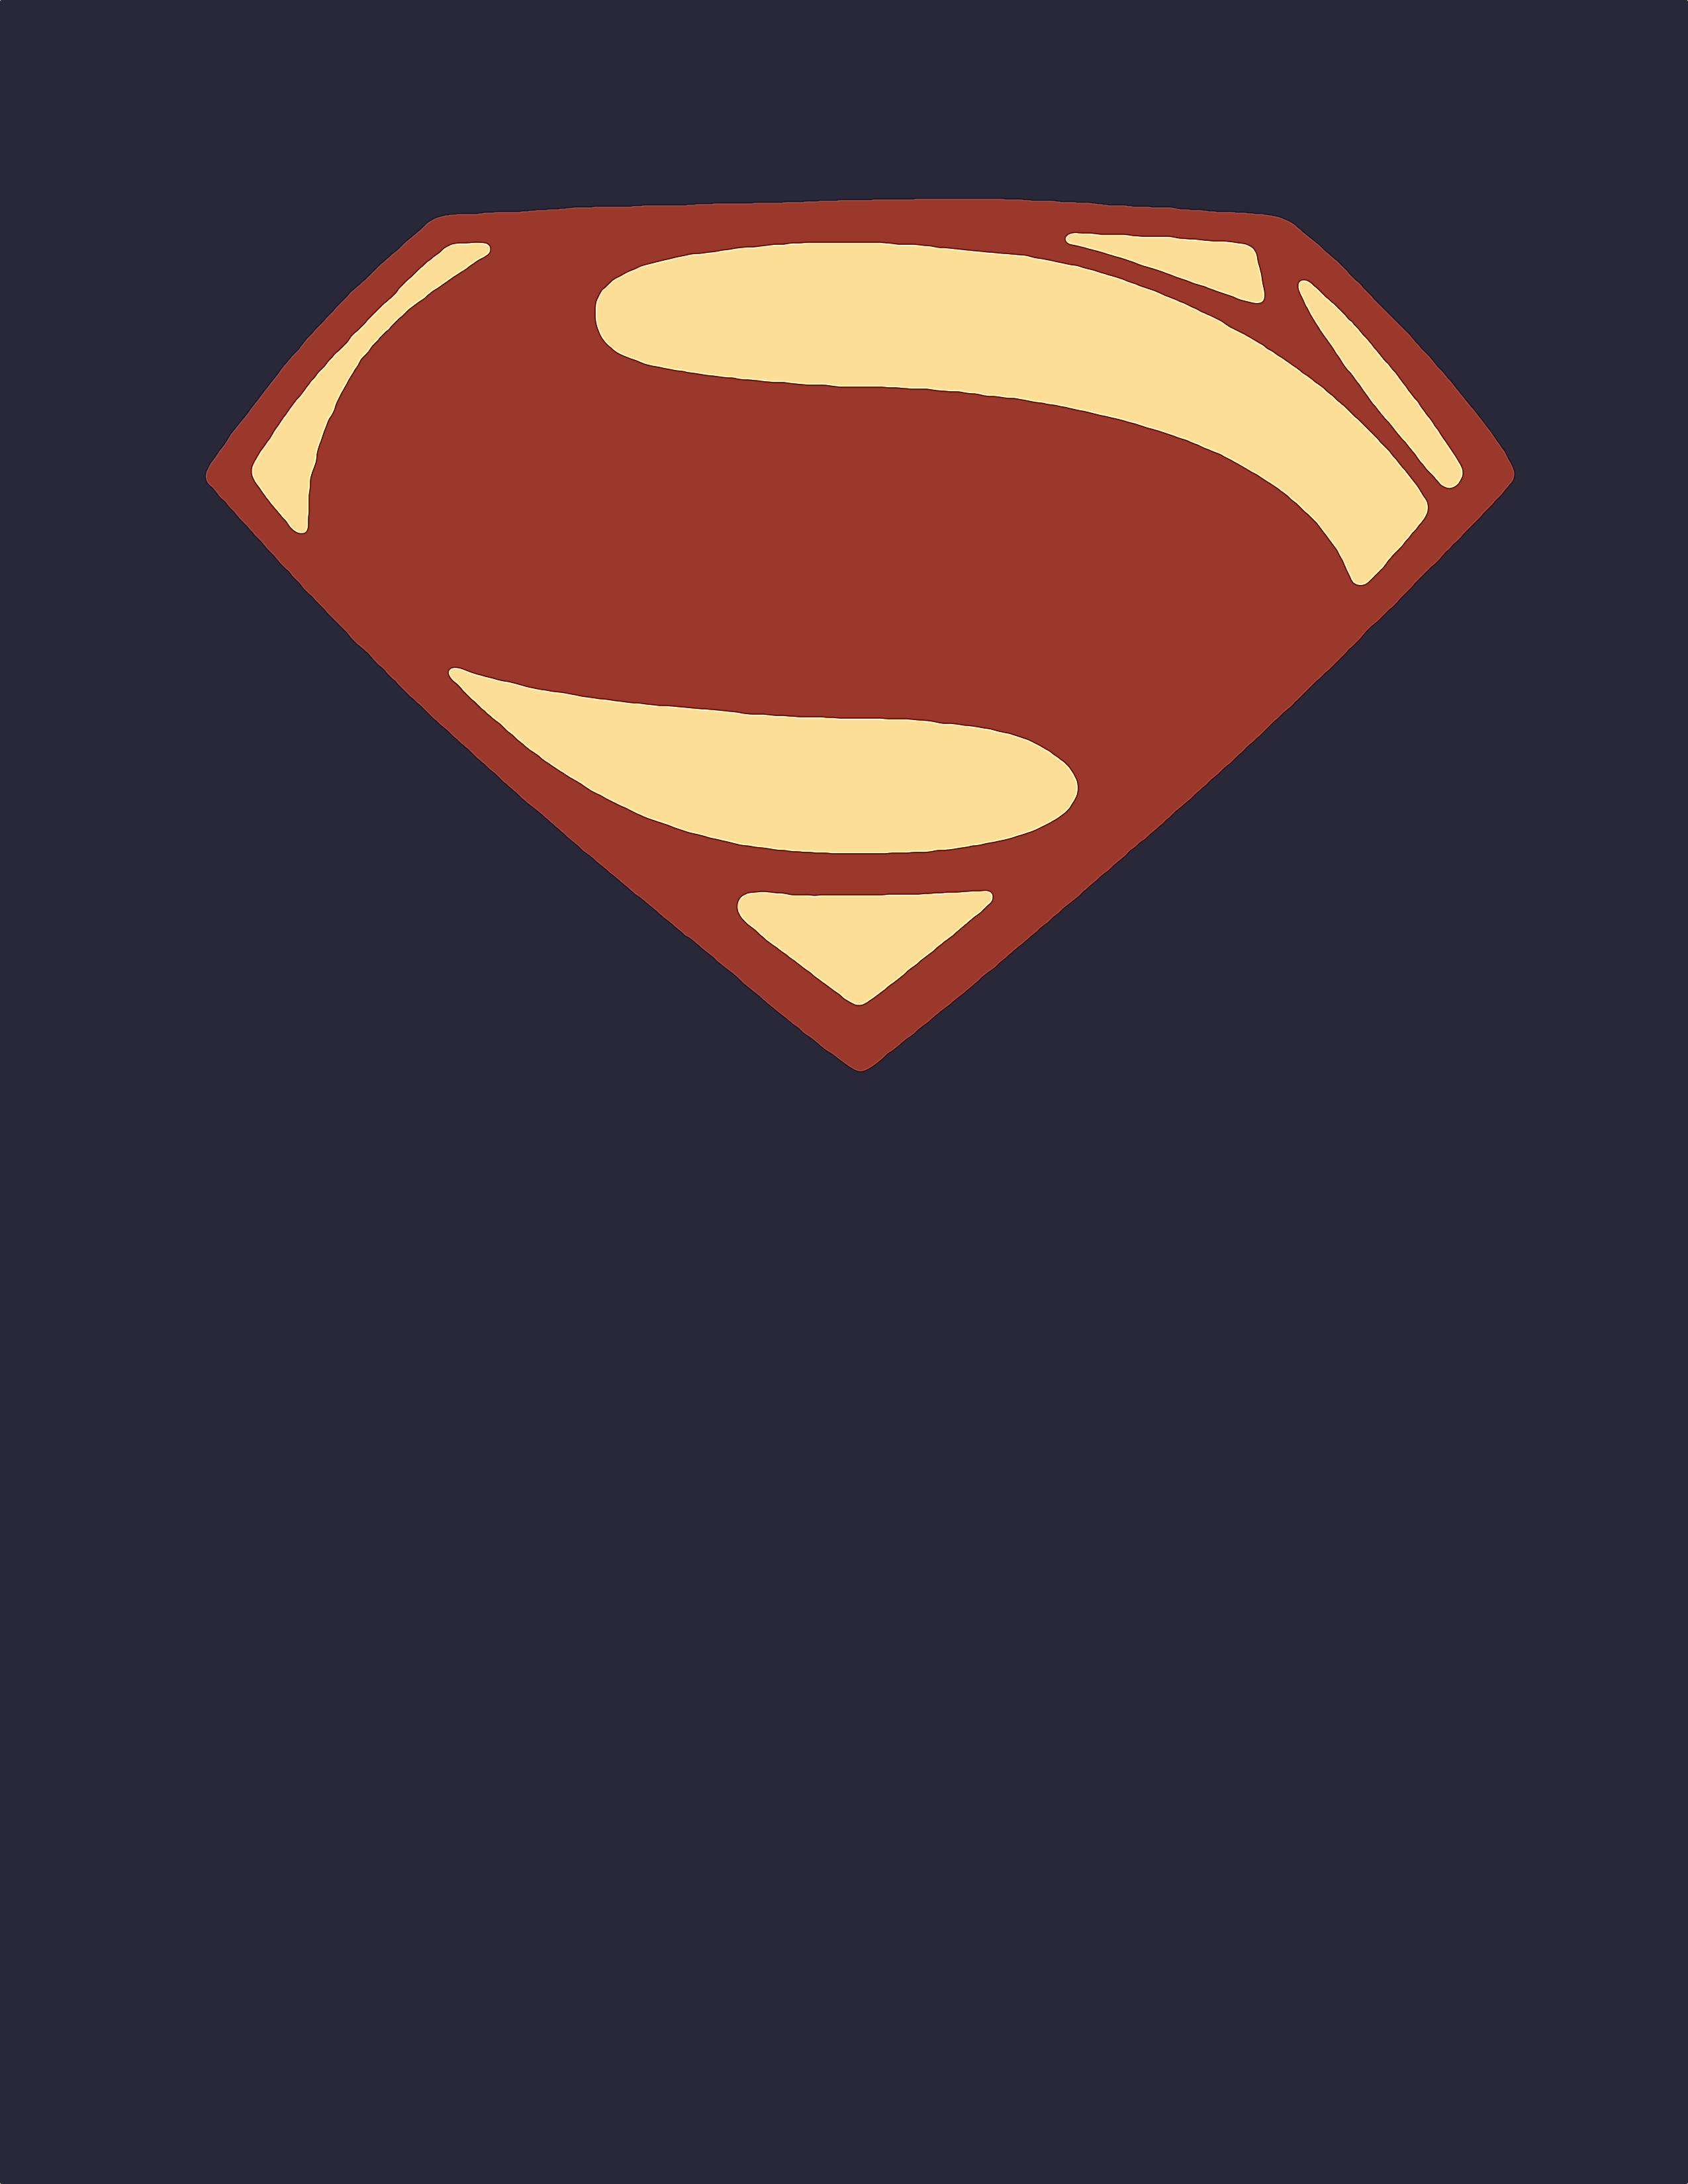 Man of steel symbol of hope poster by ajwensloff on deviantart man of steel symbol of hope poster by ajwensloff biocorpaavc Choice Image